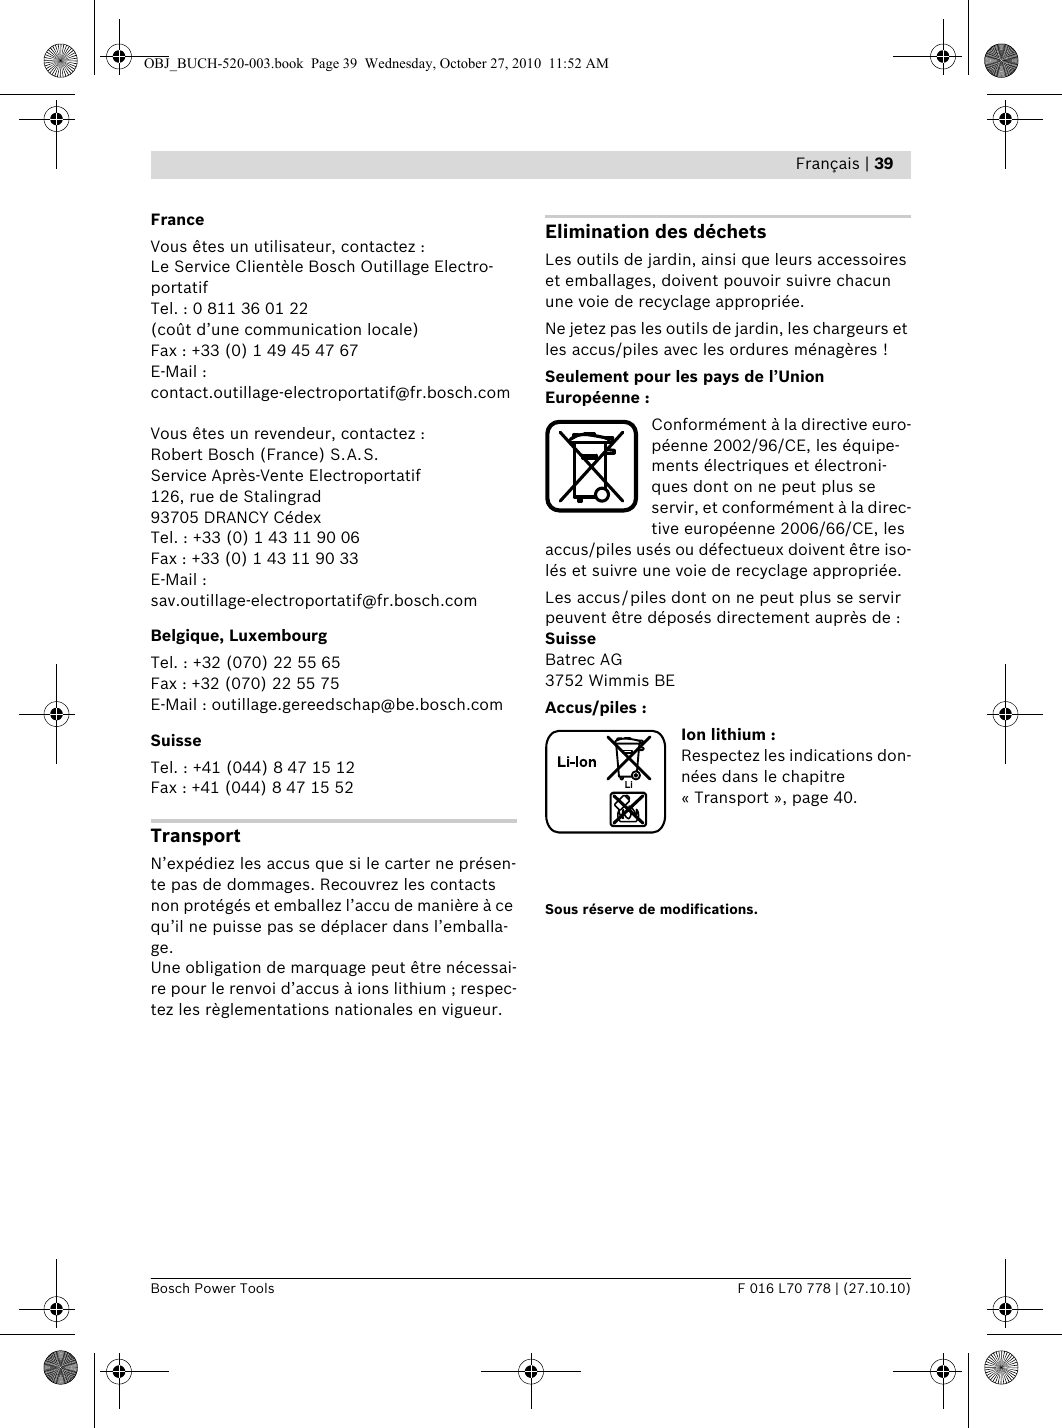 Art26LiManual User Guide Page 39